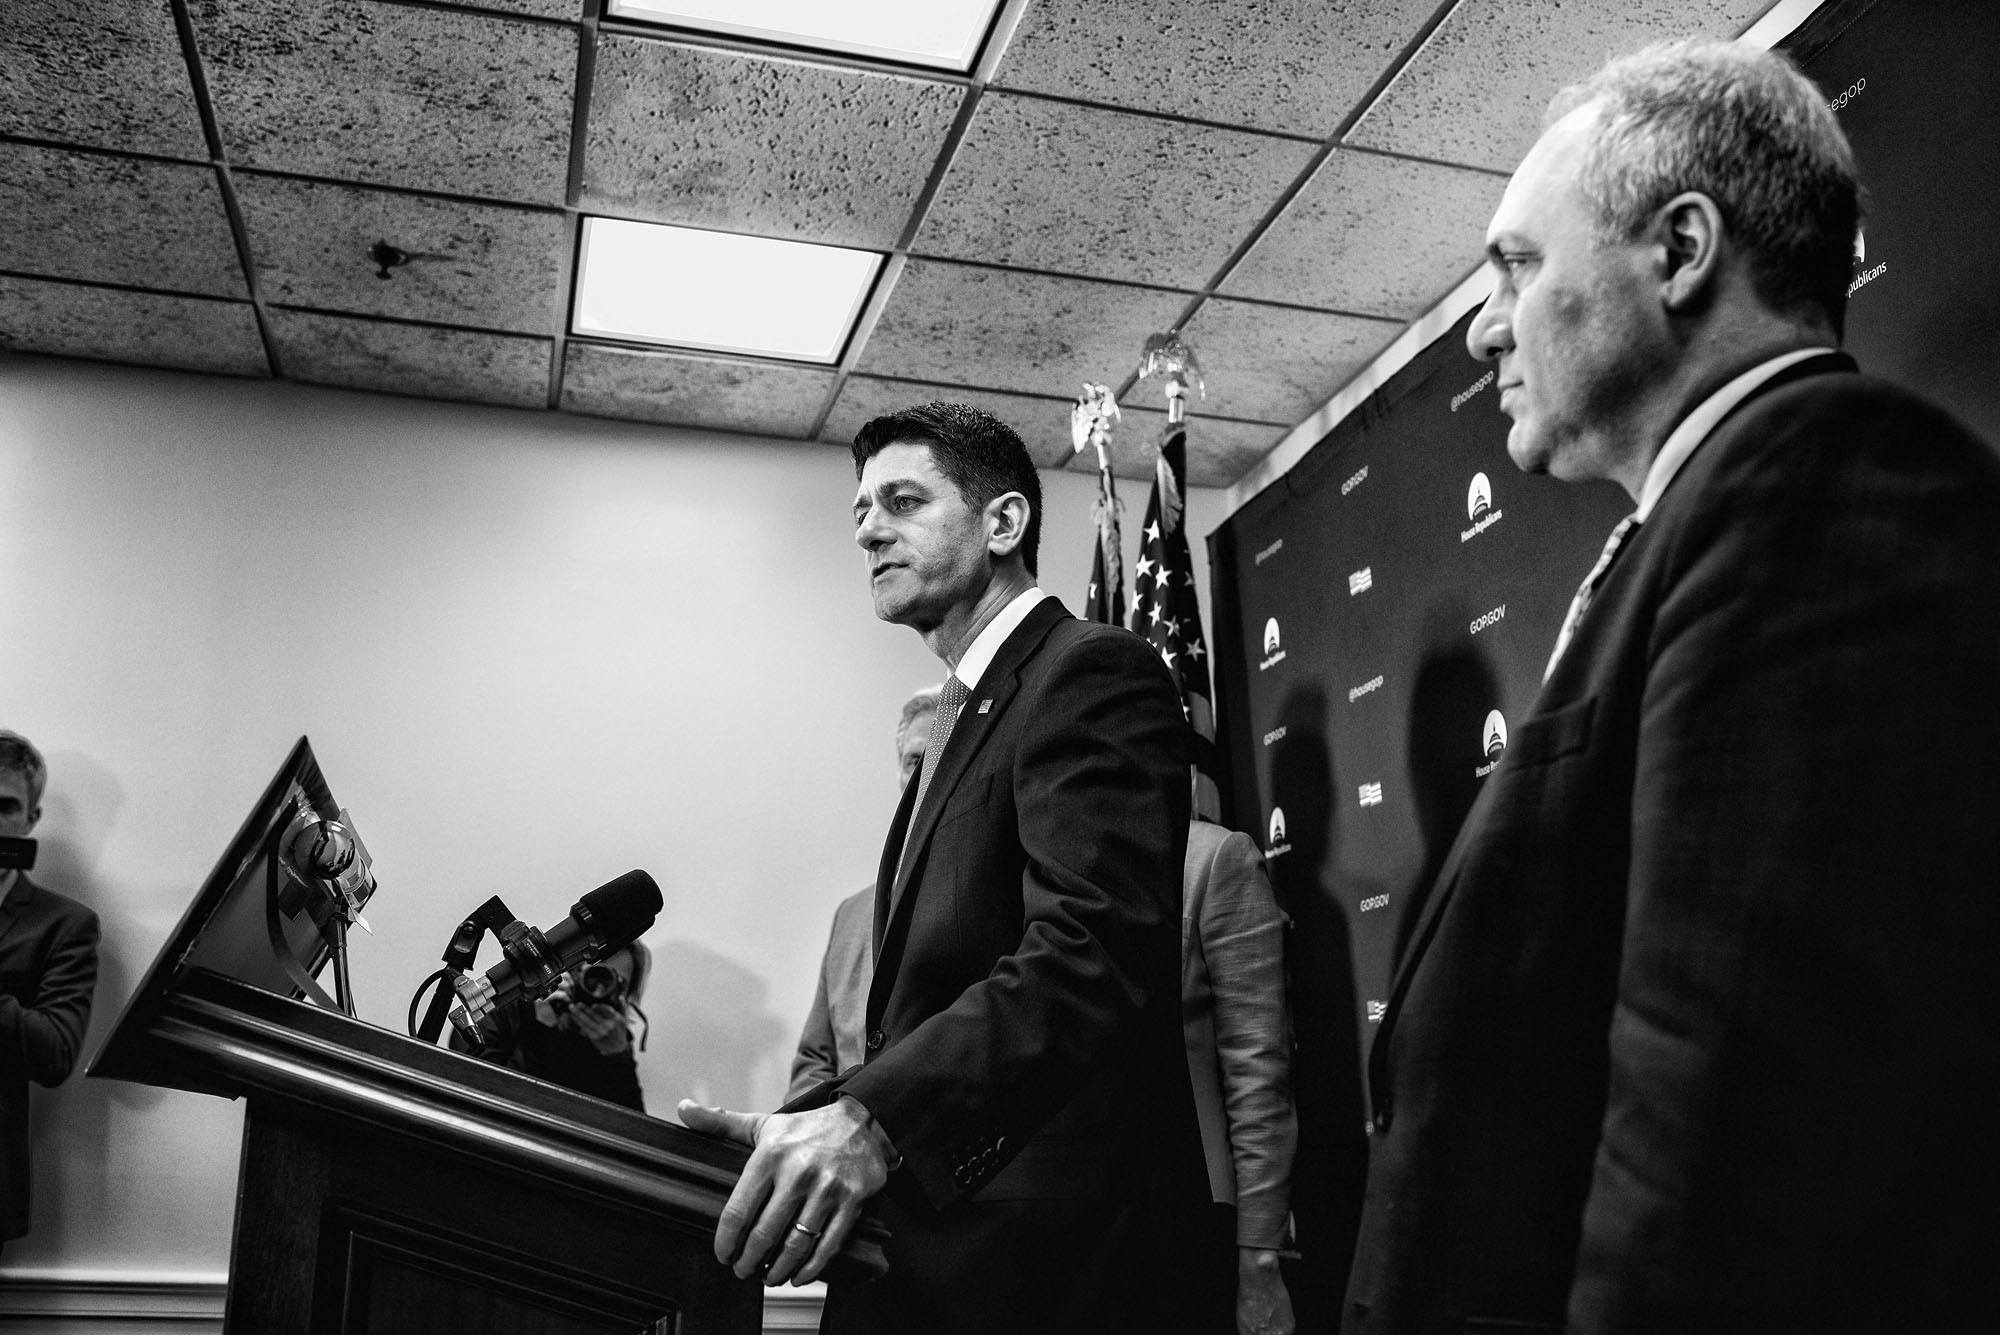 House Speaker Paul Ryan speaks to the media during a briefing after attending a closed House Republican conference on March 28, 2017